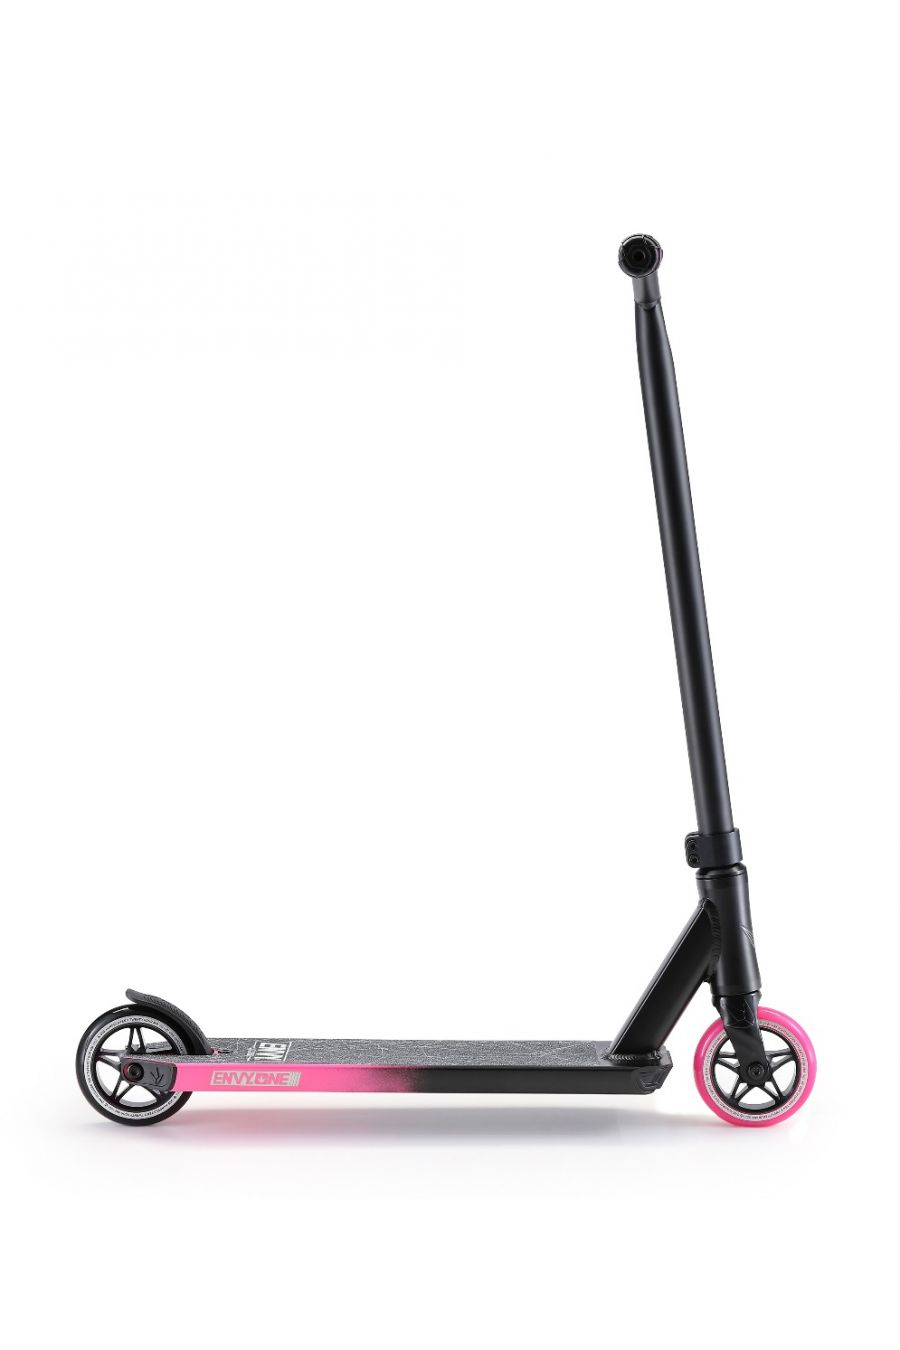 Envy One S3 Complete Scooter (Black / Pink)